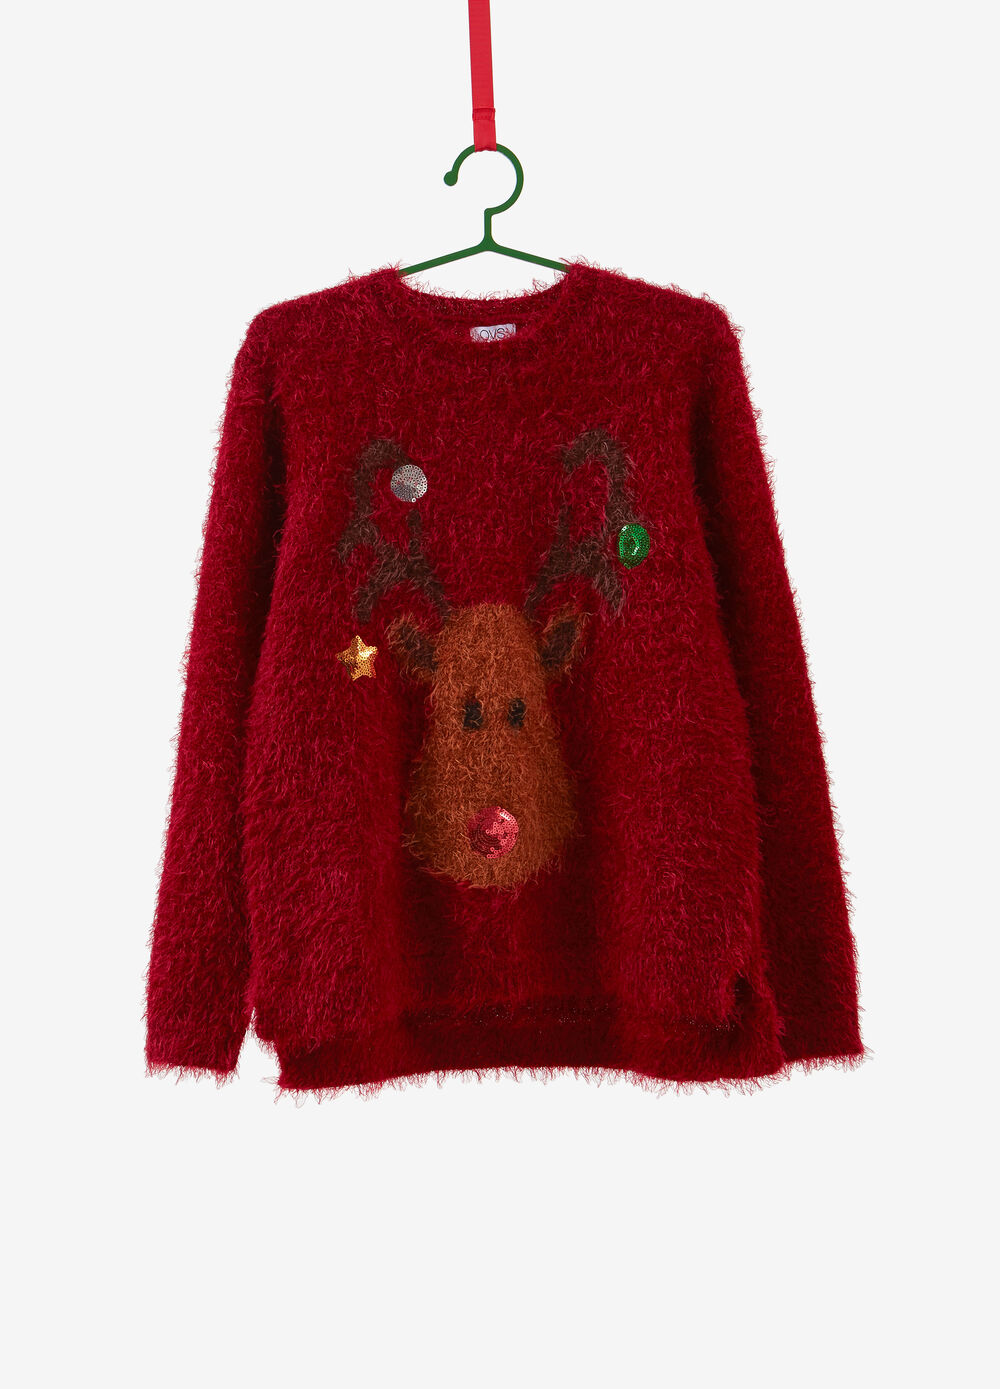 Christmas sweater with reindeer embroidery